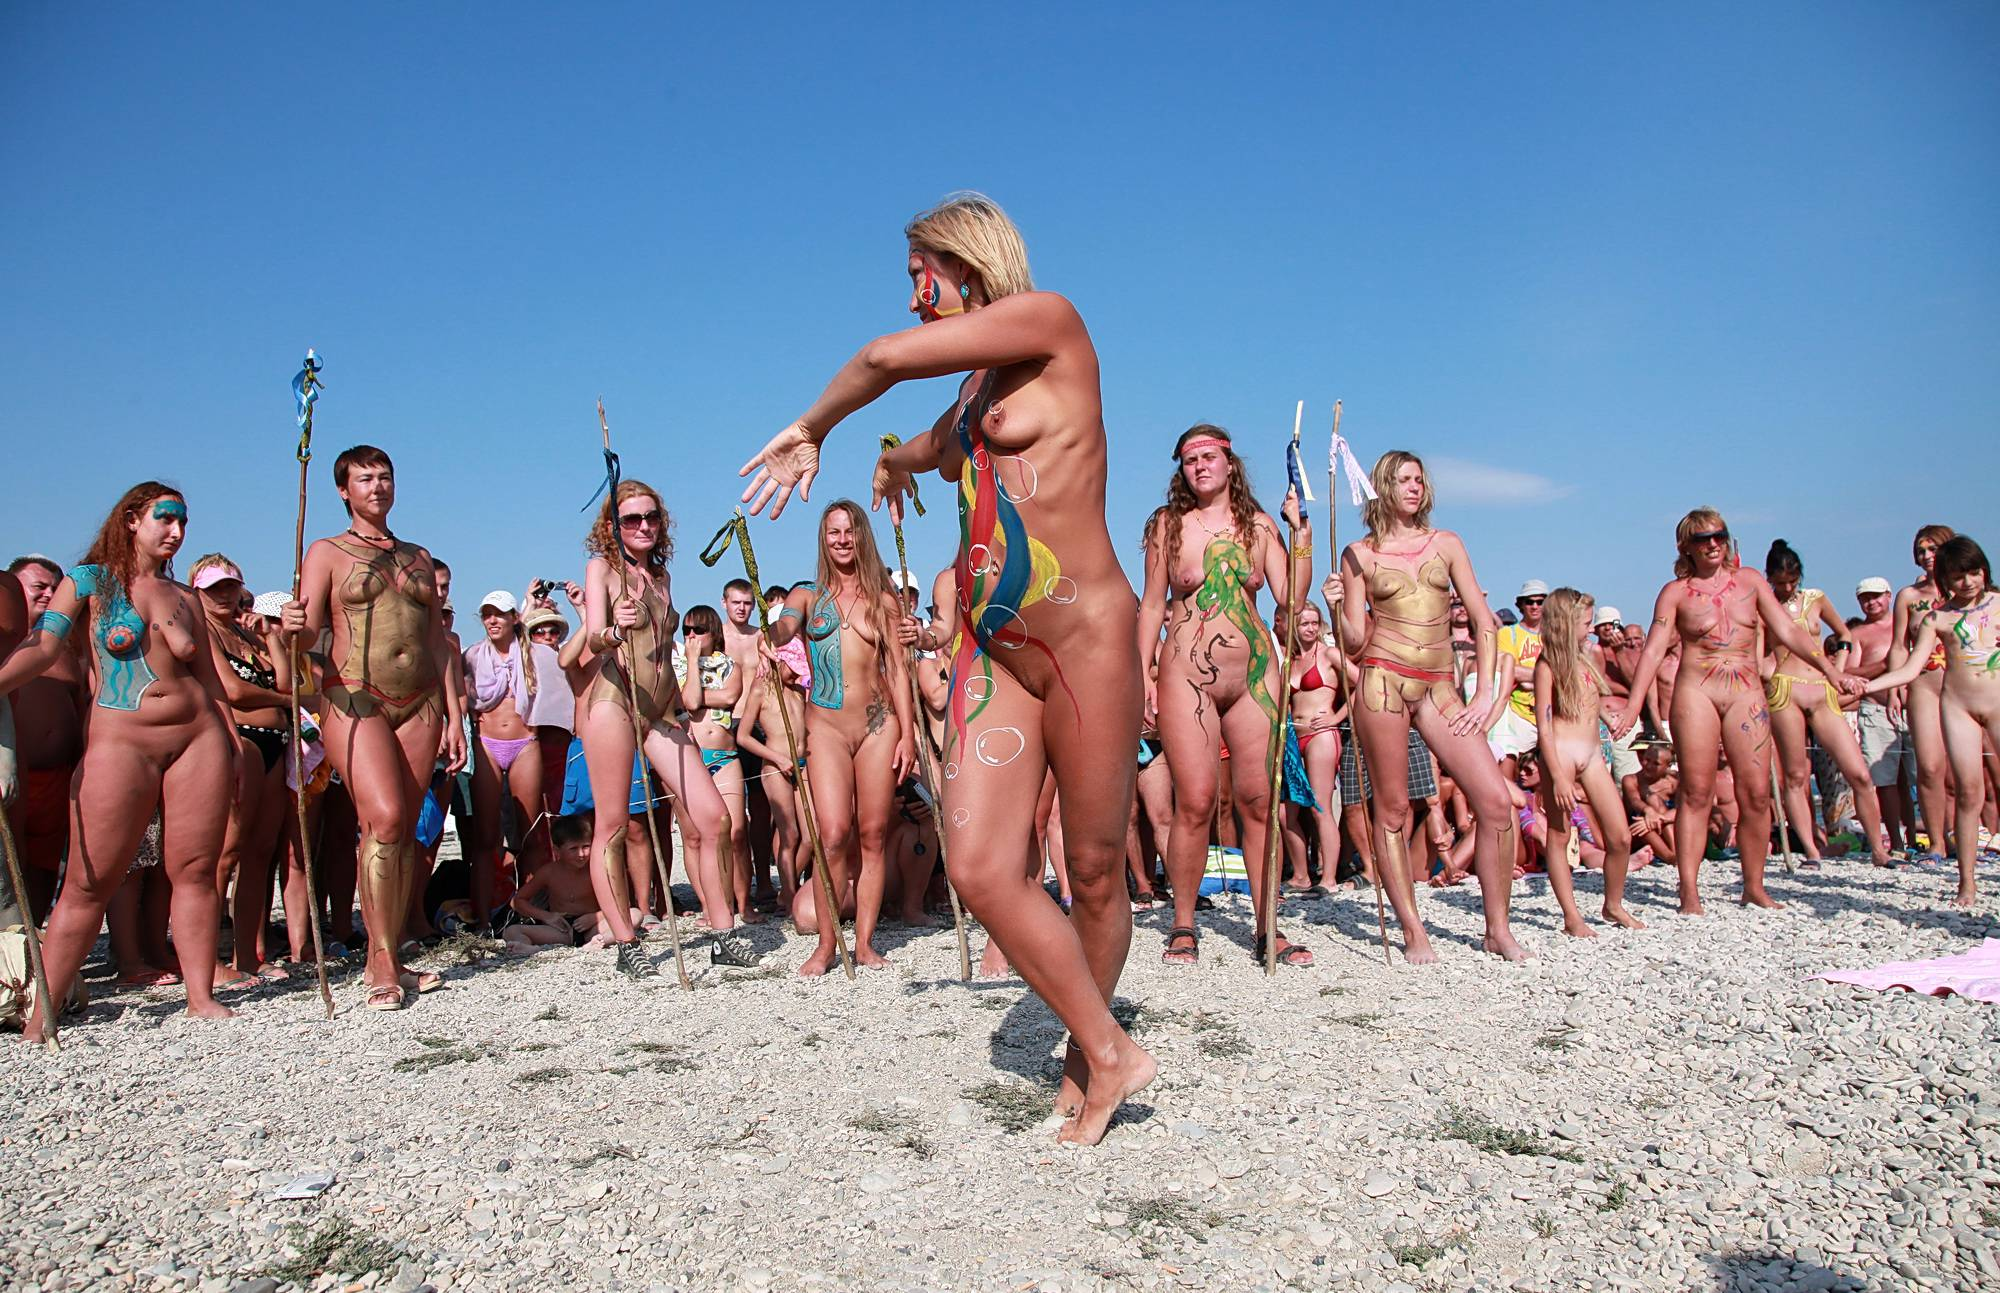 Nudist Pictures Vibrant Sea Dance Party - 2